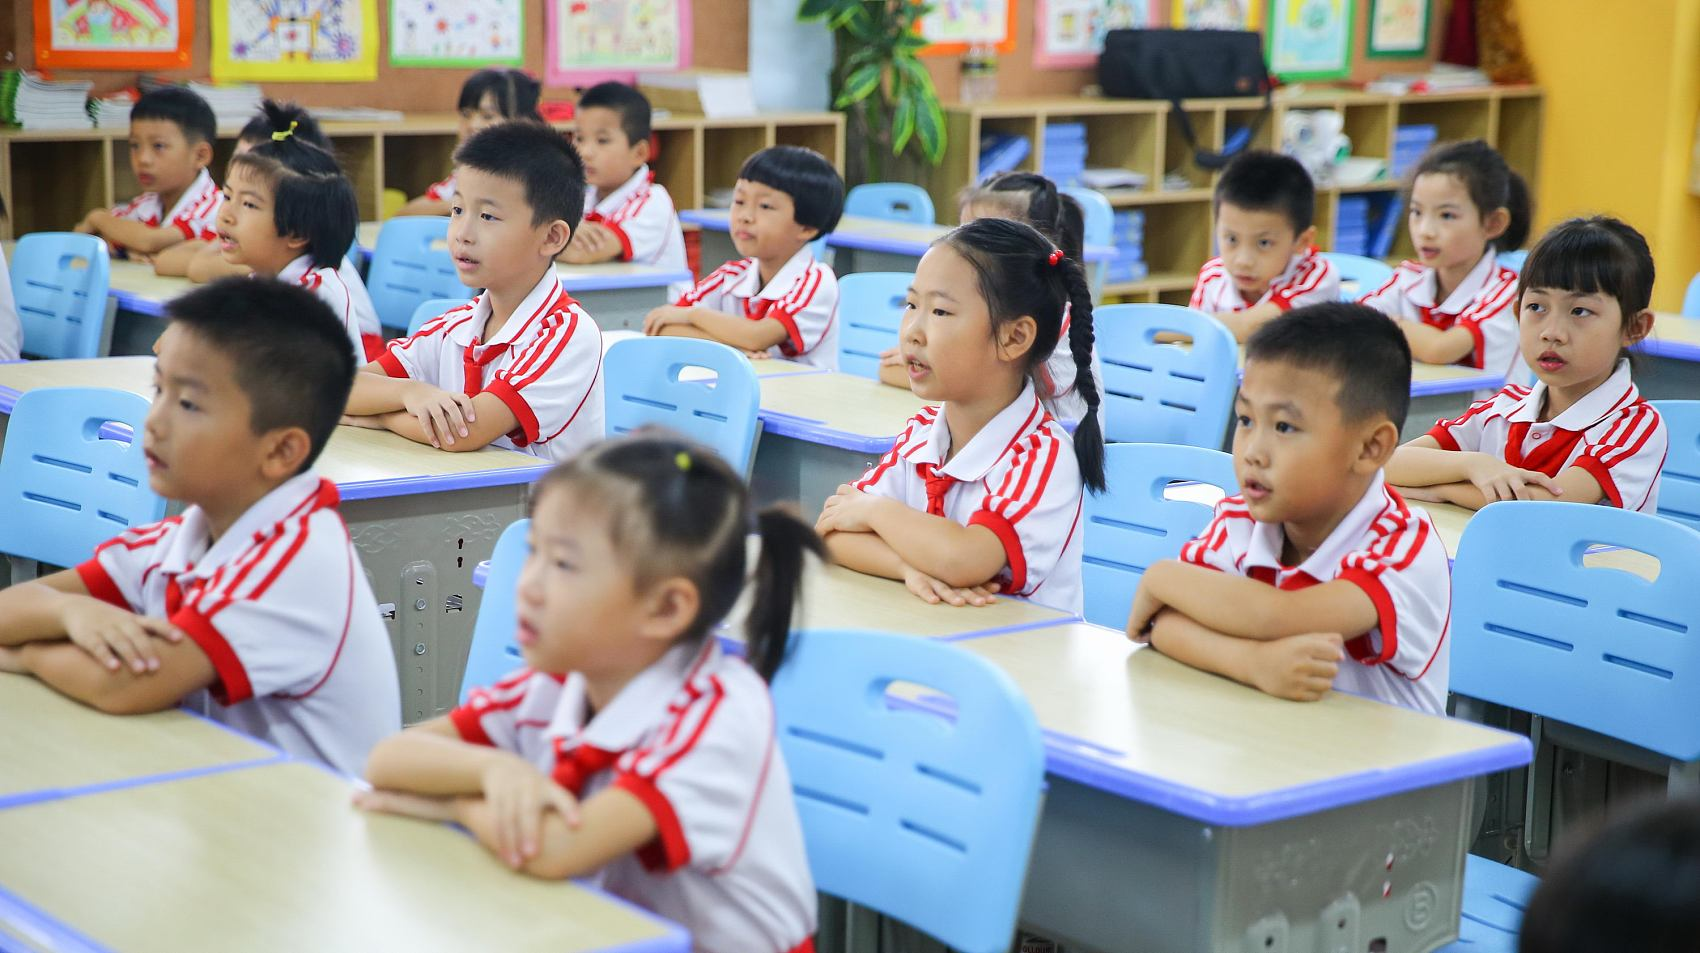 Number of dropouts from China's 9-year compulsory education falls to 2,419